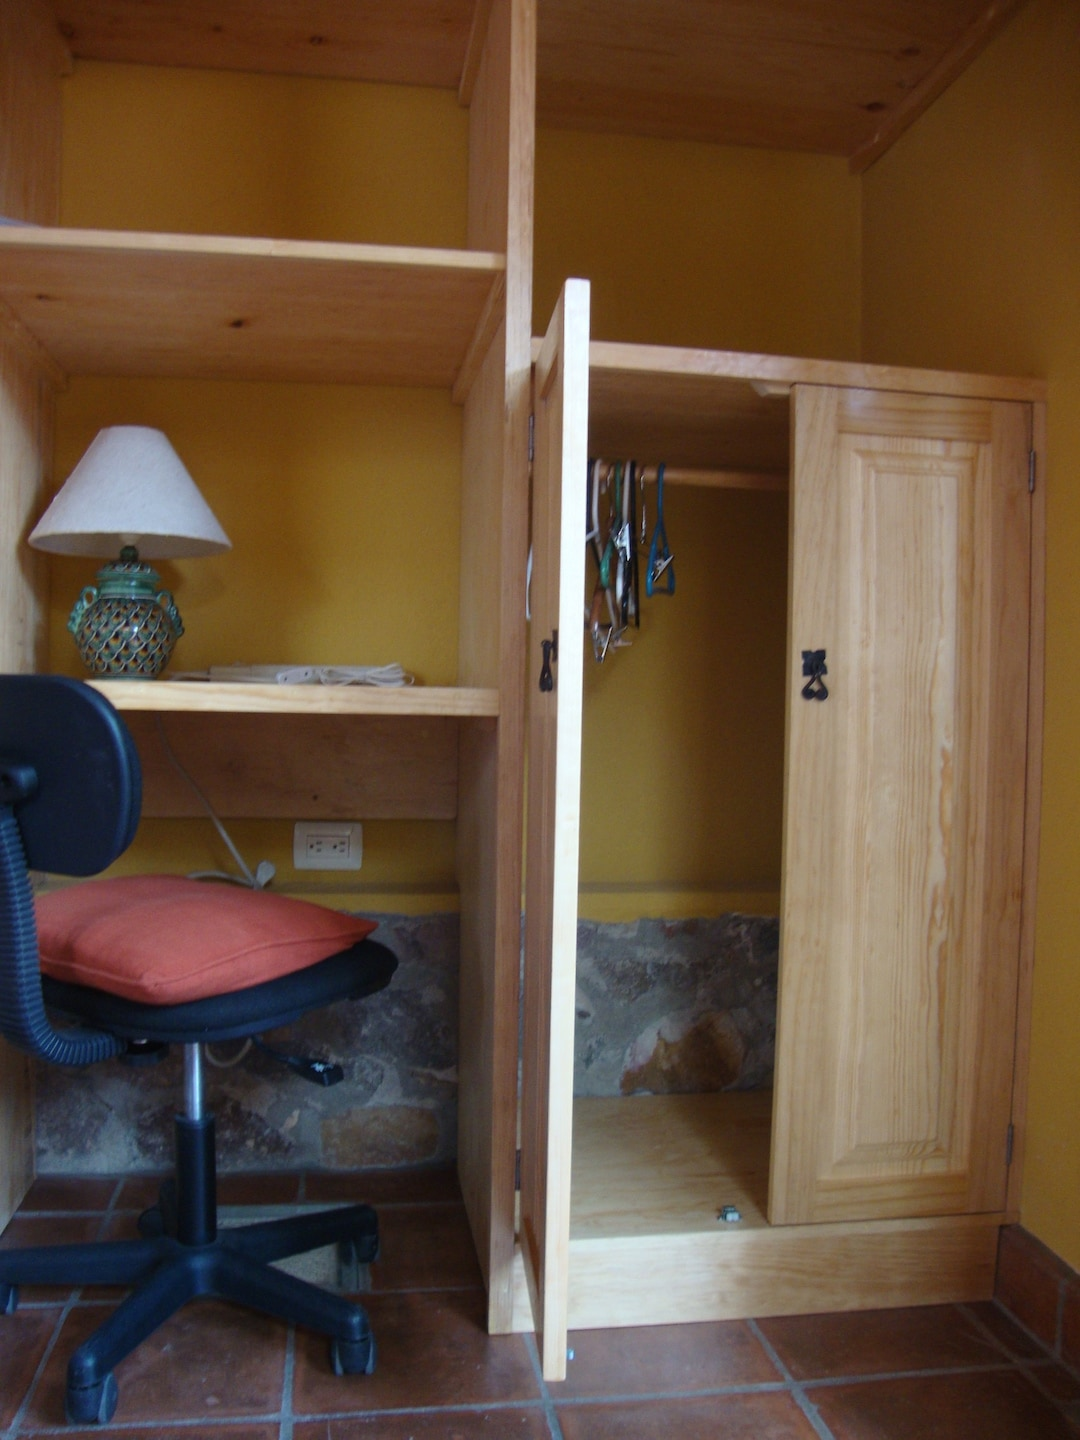 New built-in cabinet offers closet/desk/ shelves combo.